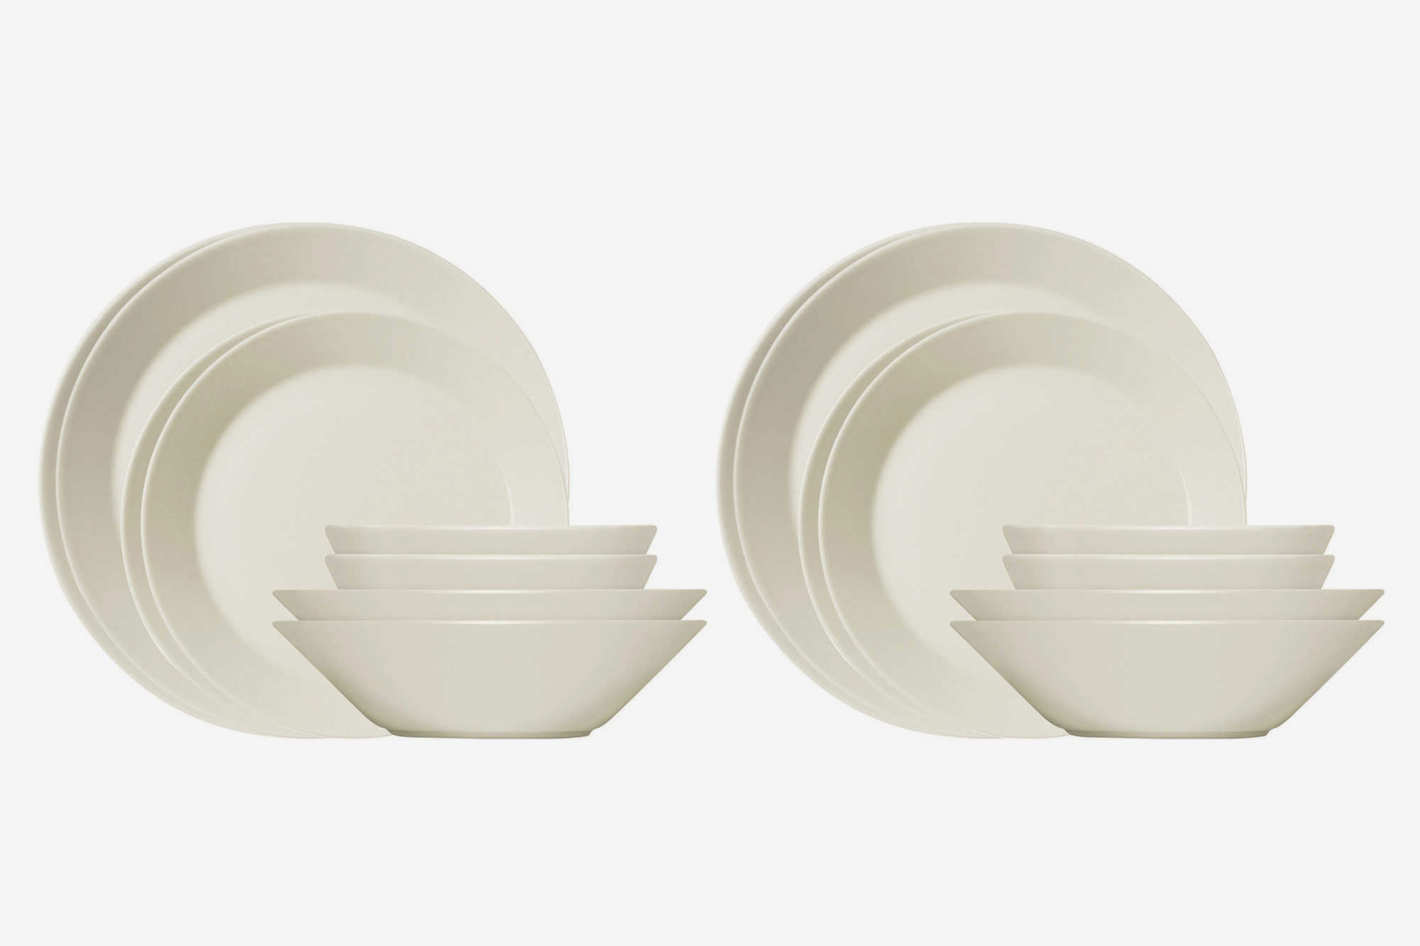 Iittala Teema 16-Piece Dinnerware Set in White